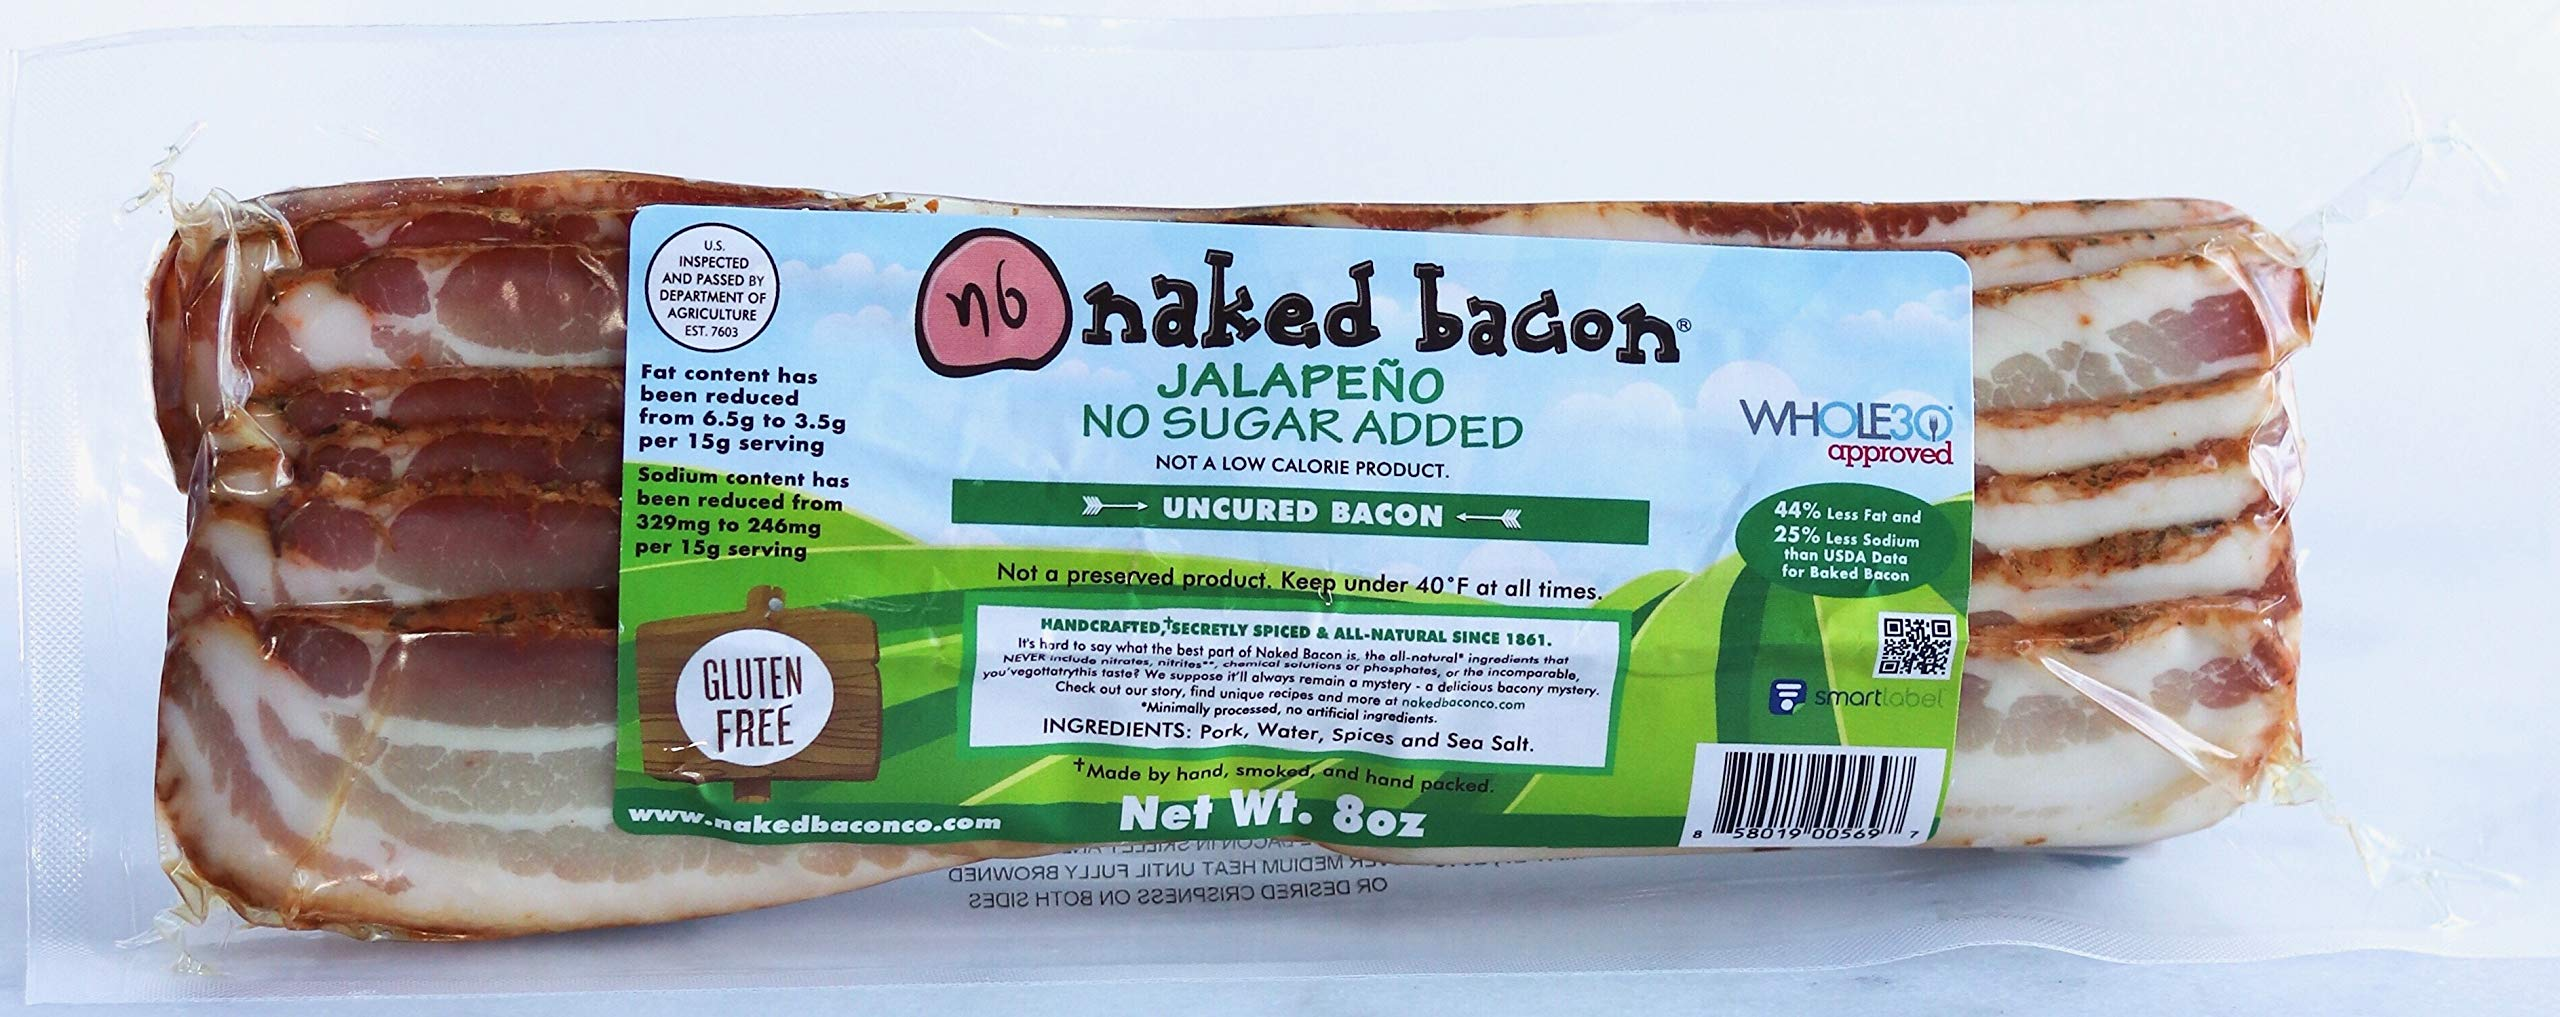 Jalapeno Sugar Free Naked Bacon - Whole30 Approved Multipack (5 packages)